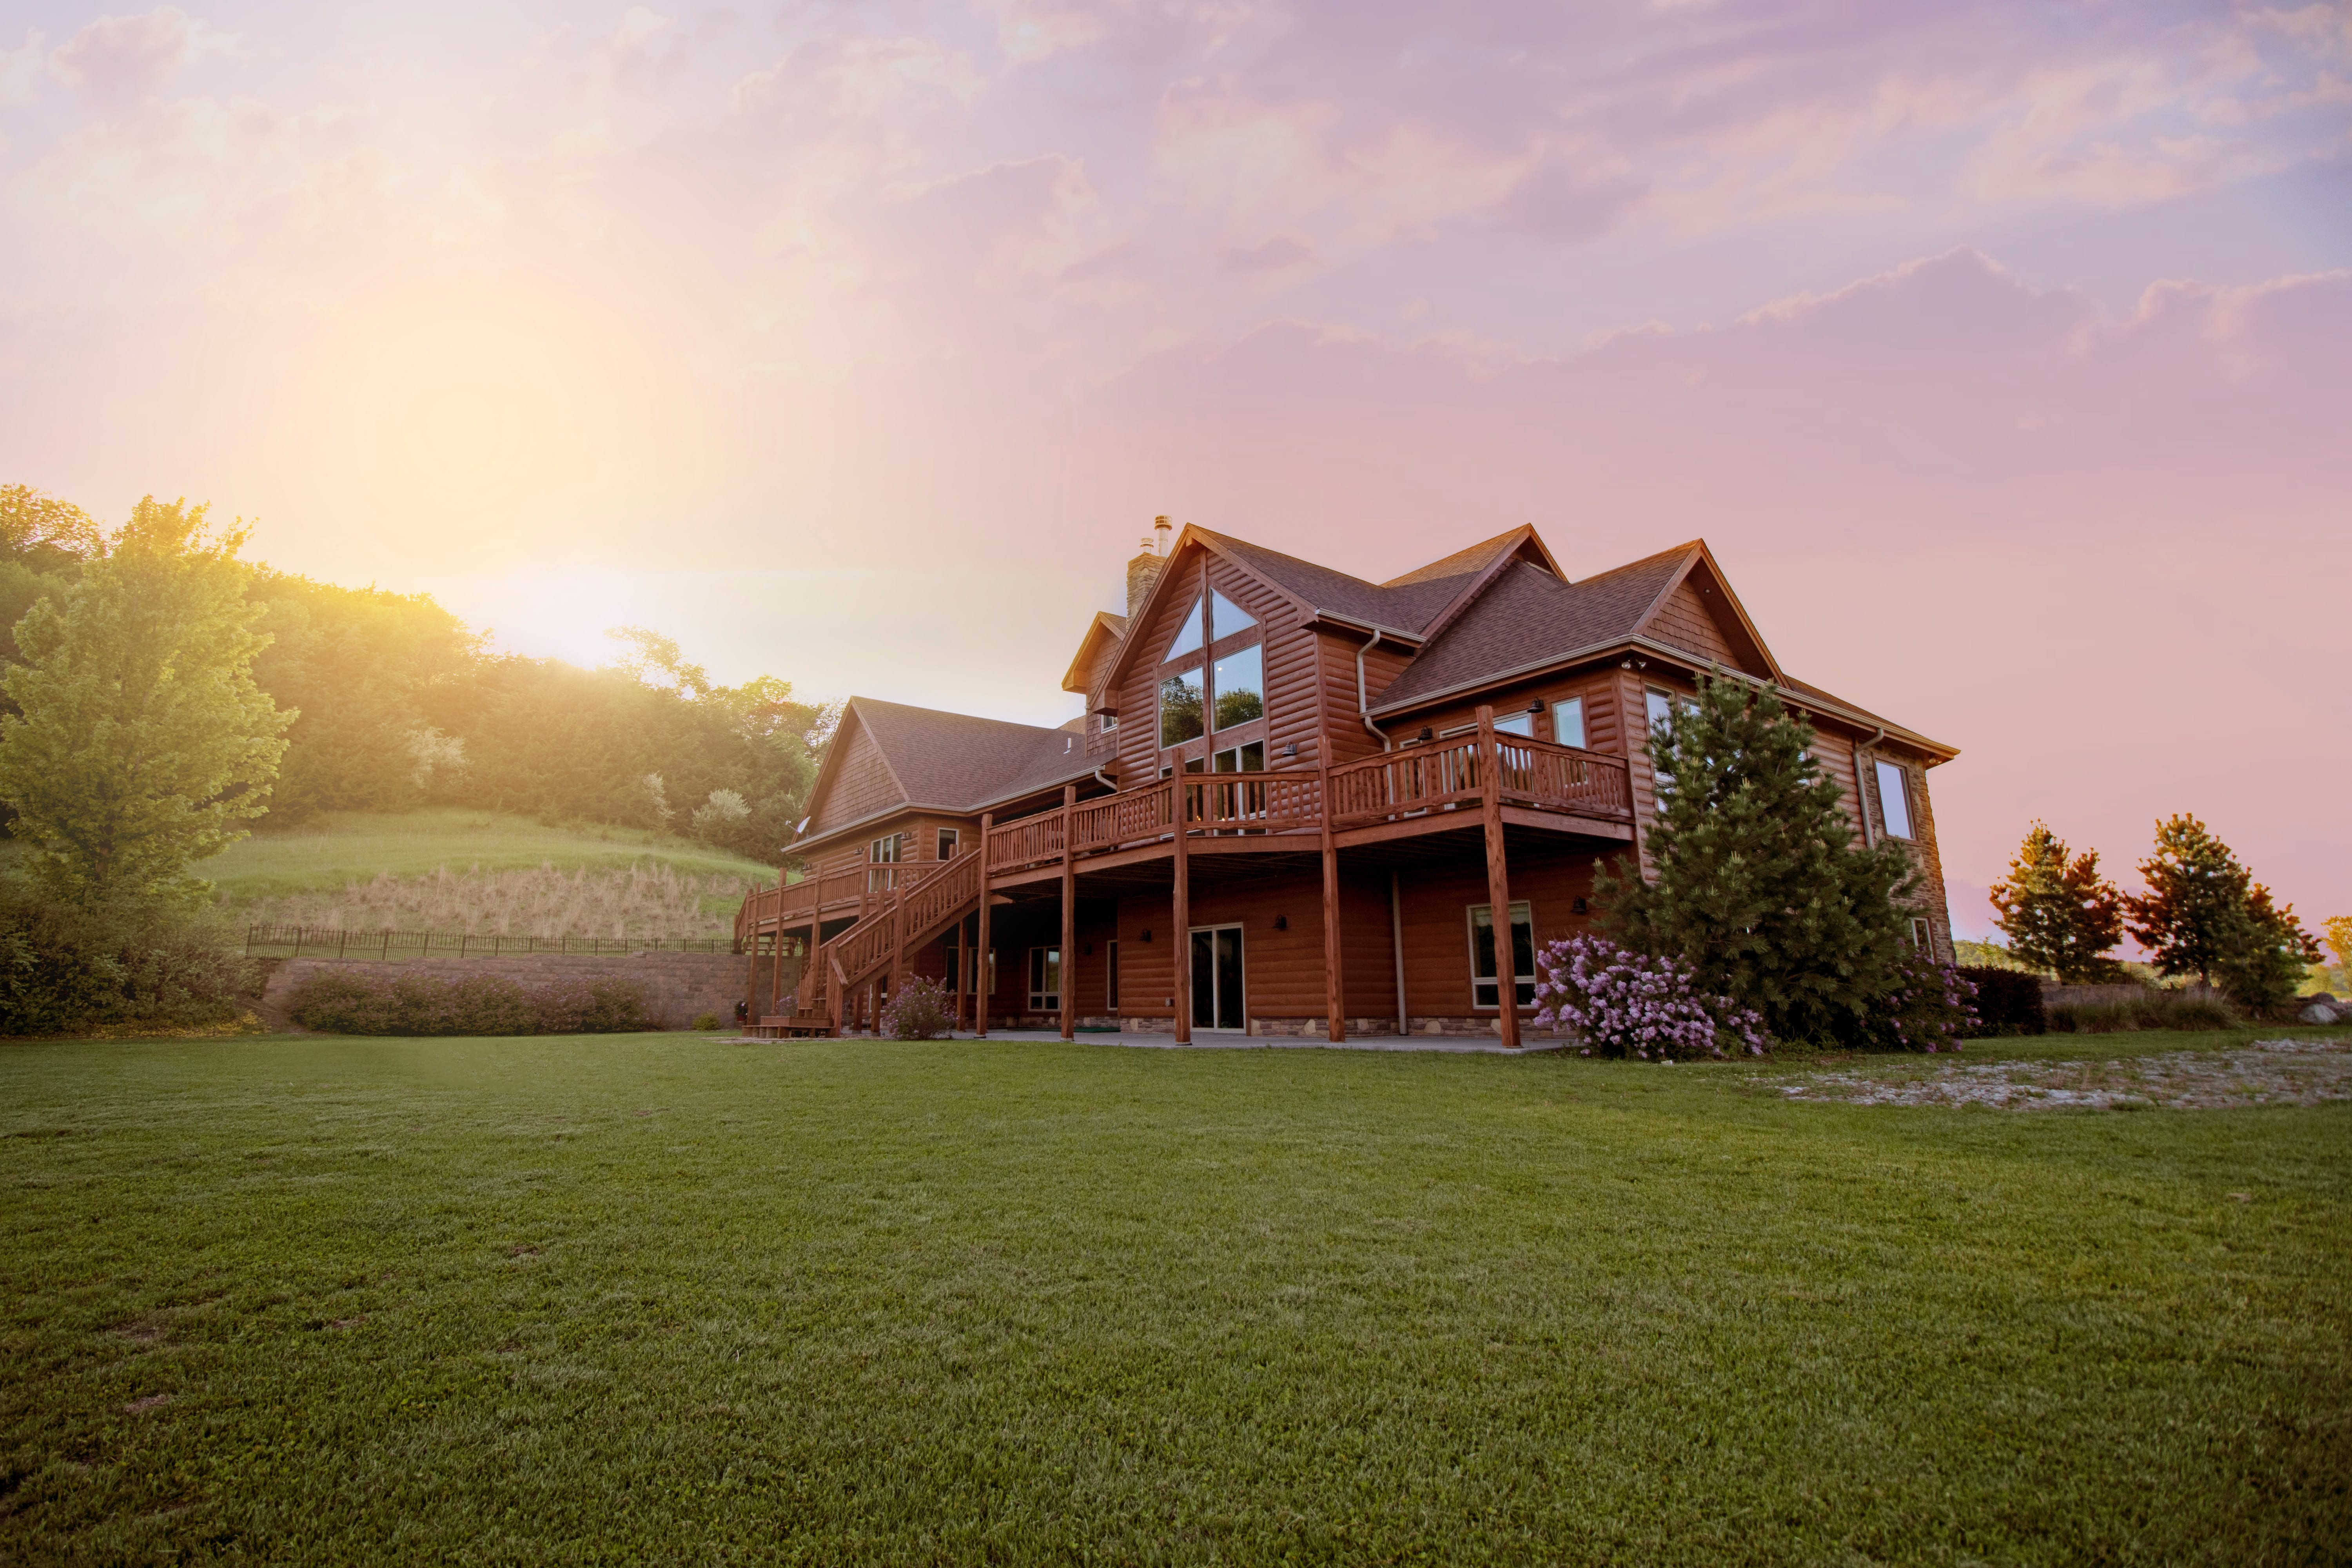 Brown wooden house with green grass field; image by Bailey Anselme, via Unsplash.com.